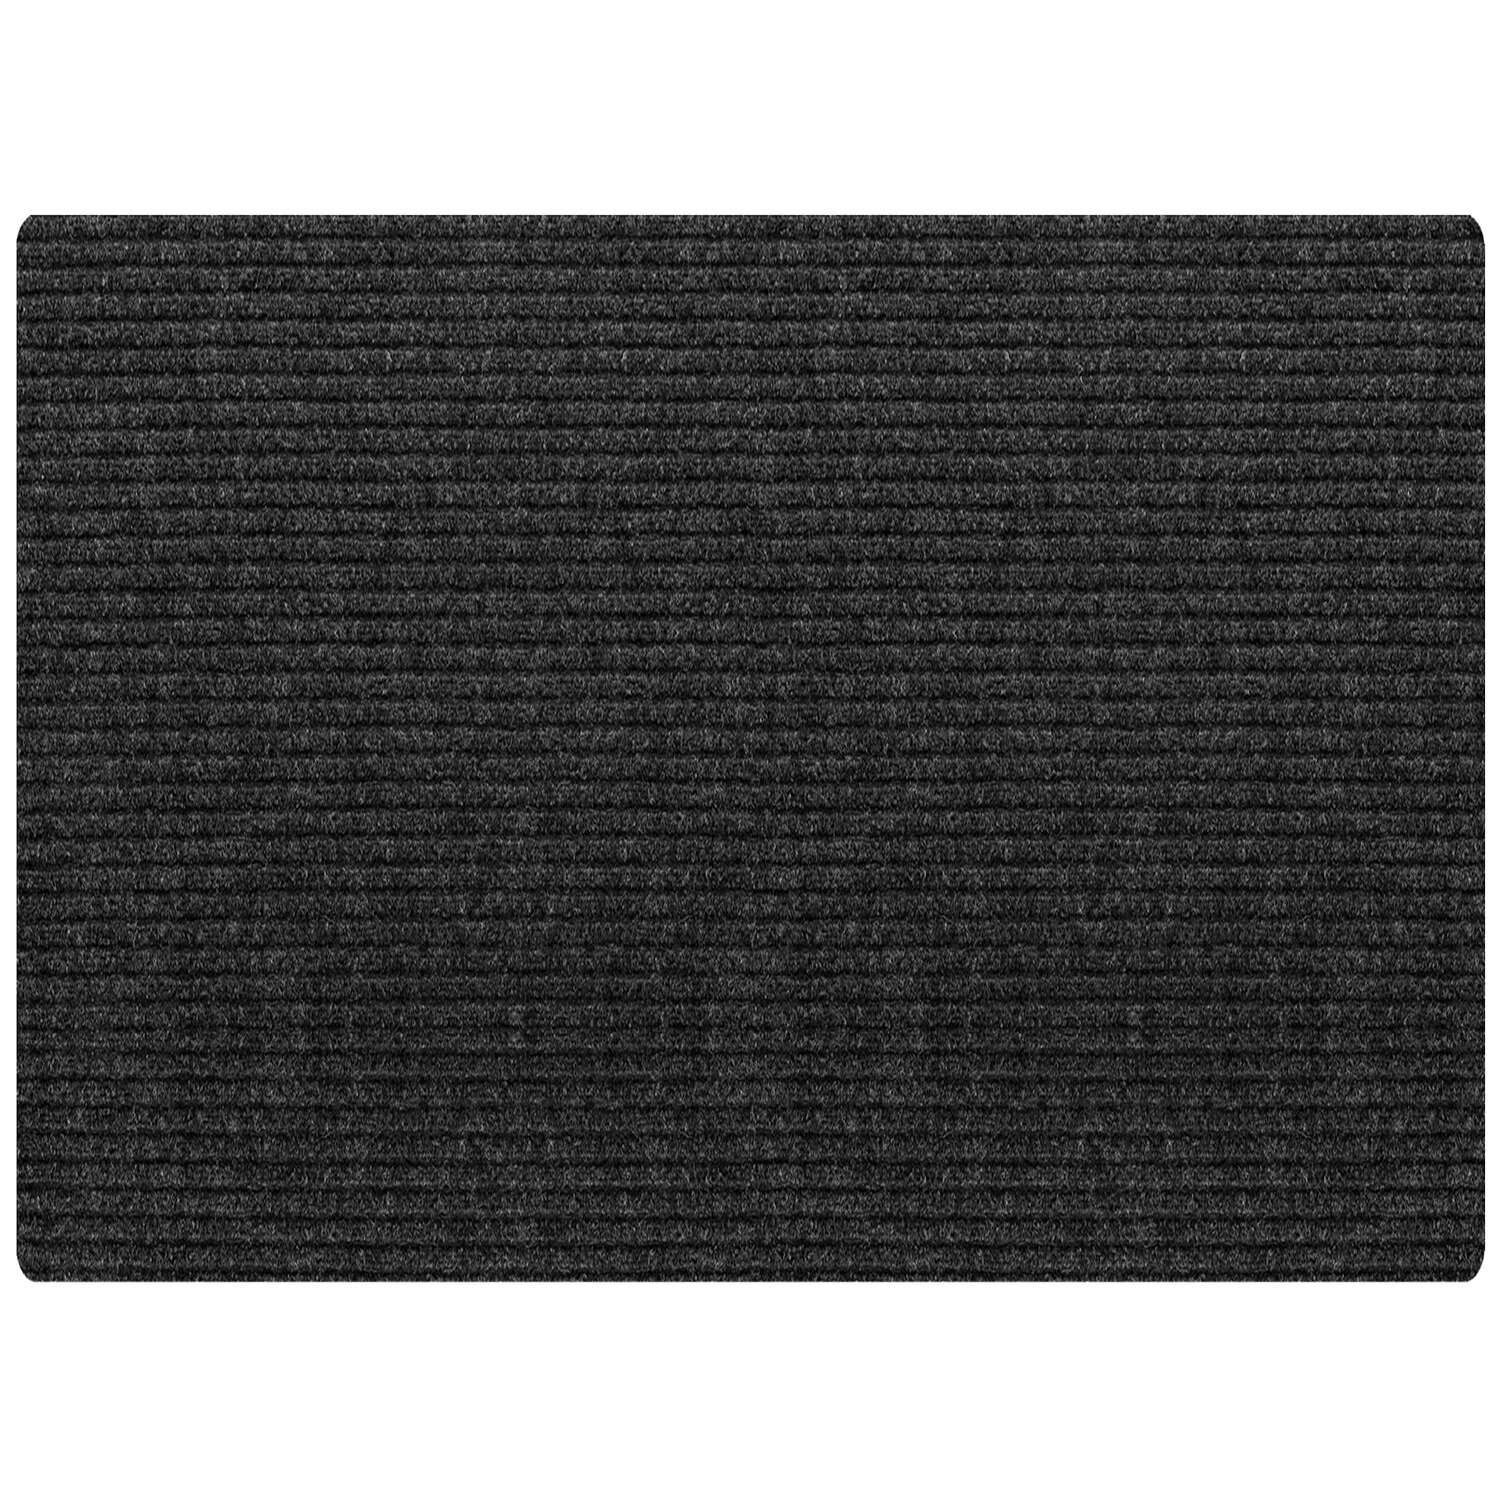 Multy Home  6 ft. L x 4 ft. W Charcoal  Cocord  Polyester  Nonslip Runner Mat